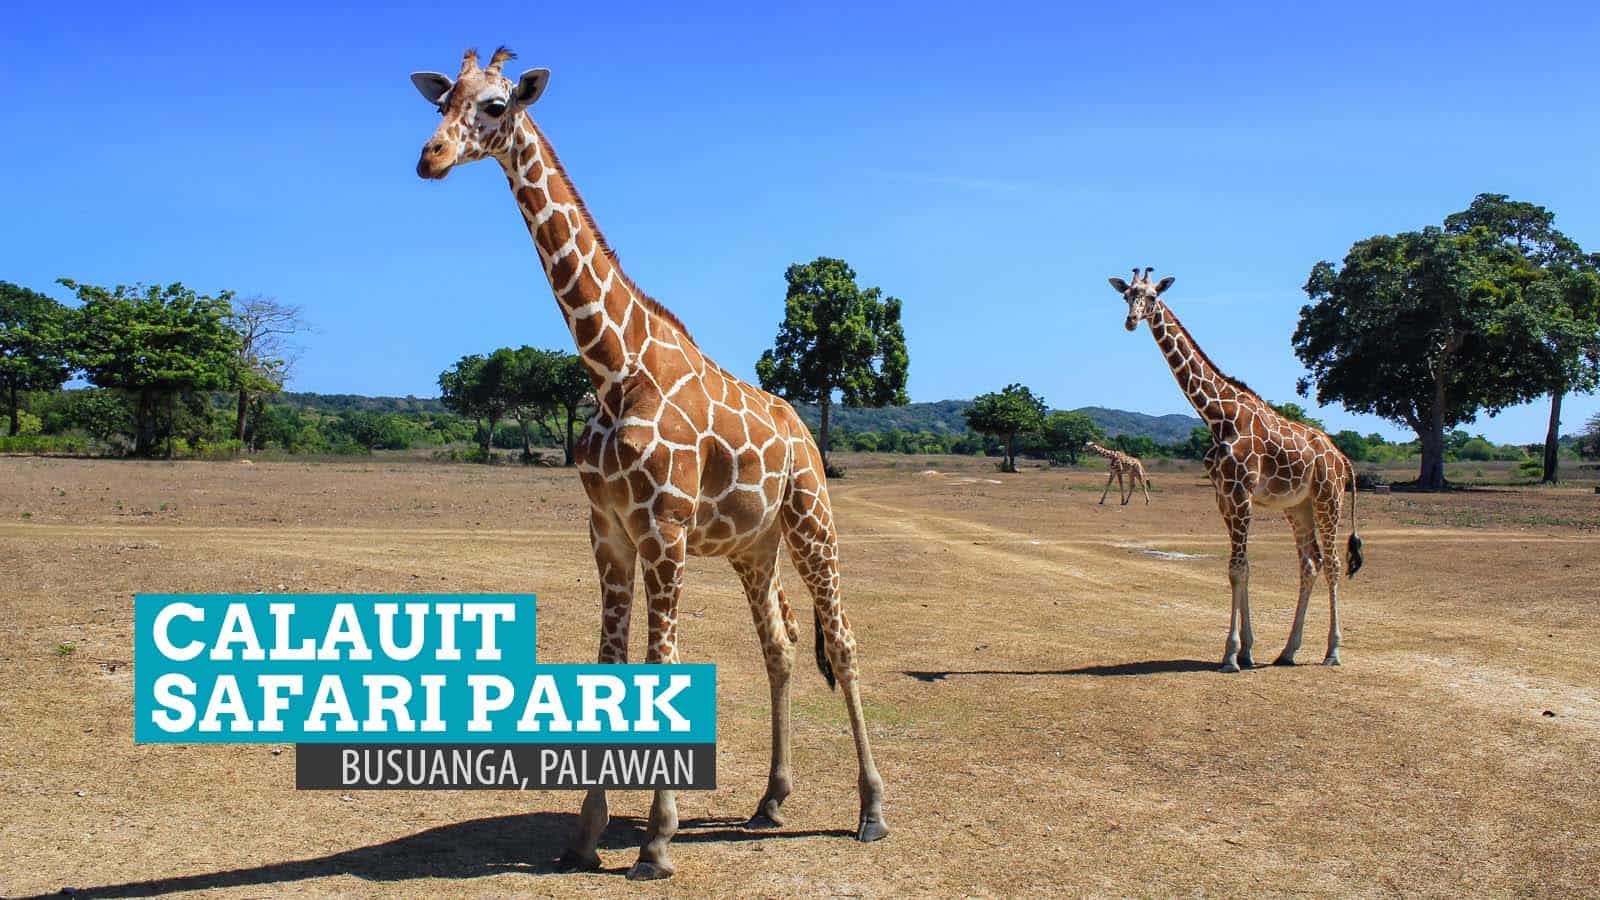 CALAUIT SAFARI PARK: What to Expect